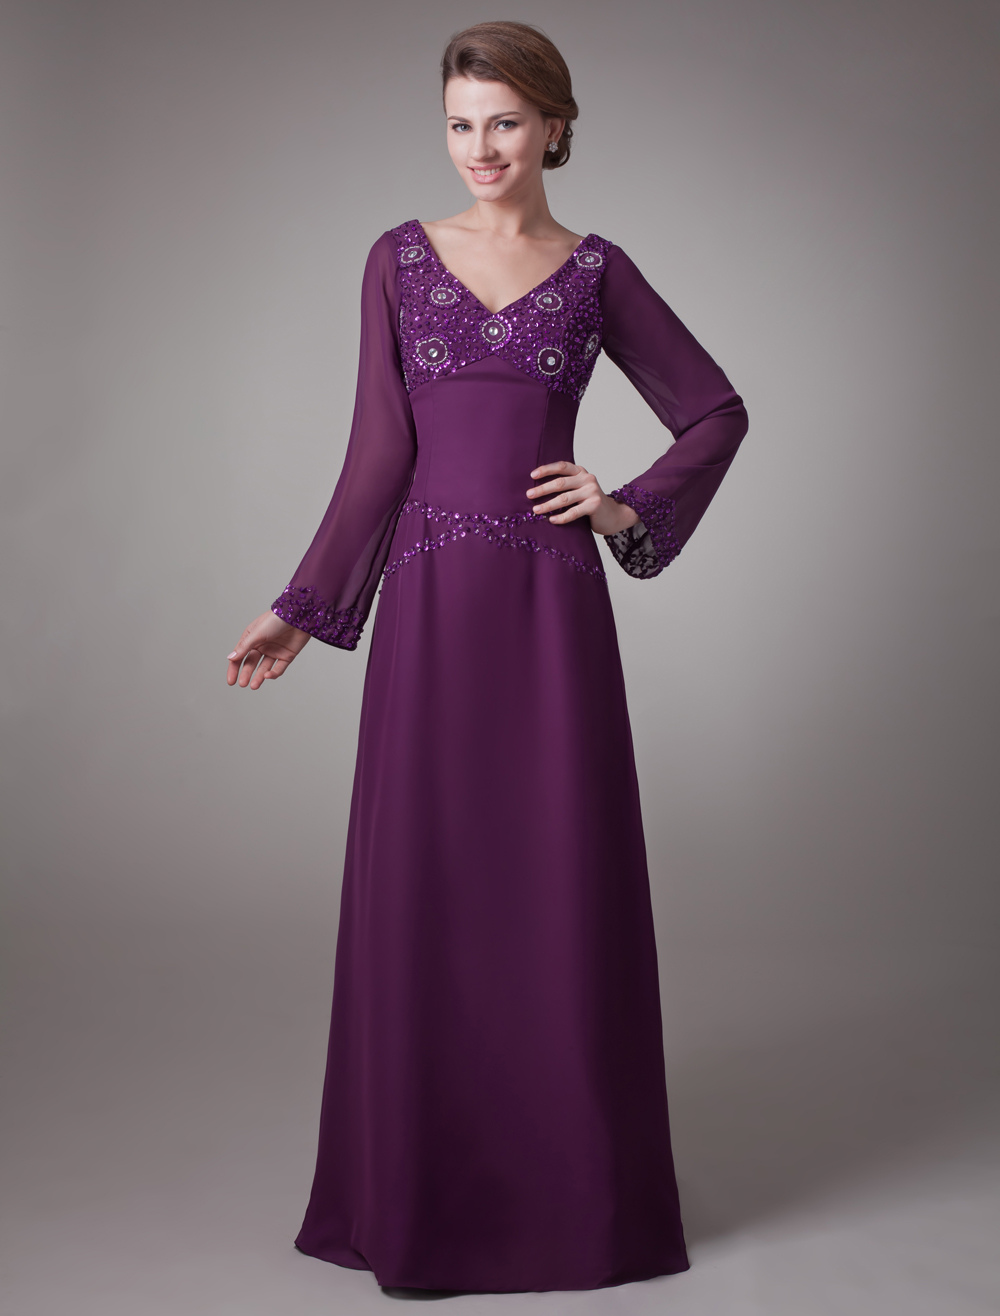 Grape A-line Charming Mother of the Bride Dress with V-Neck Sequin Long Sleeves